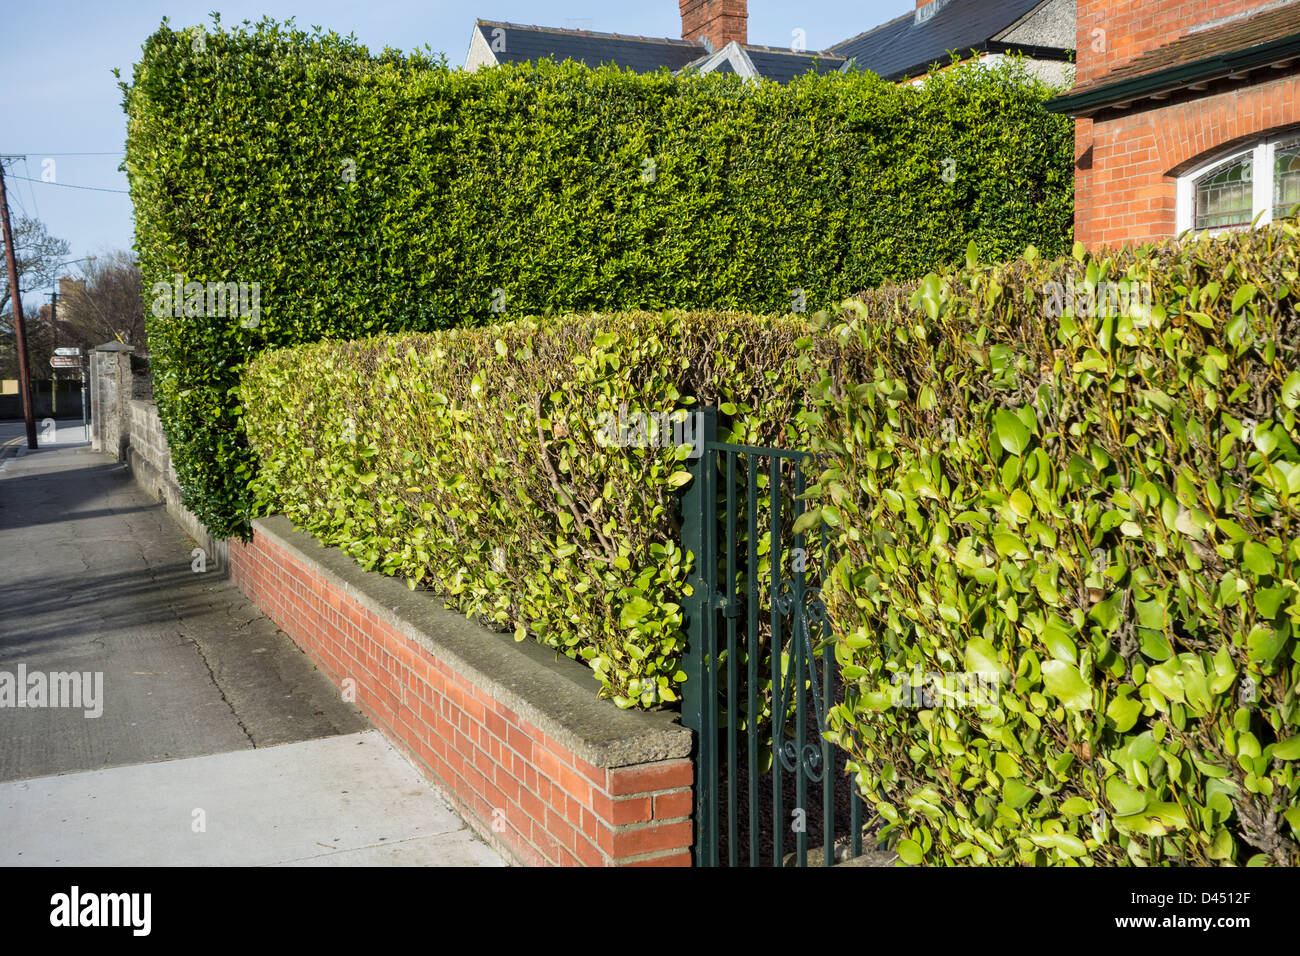 A well pruned hedge around a domestic garden - Holmpatrick, Skerries, Co.Dublin, Ireland - Stock Image